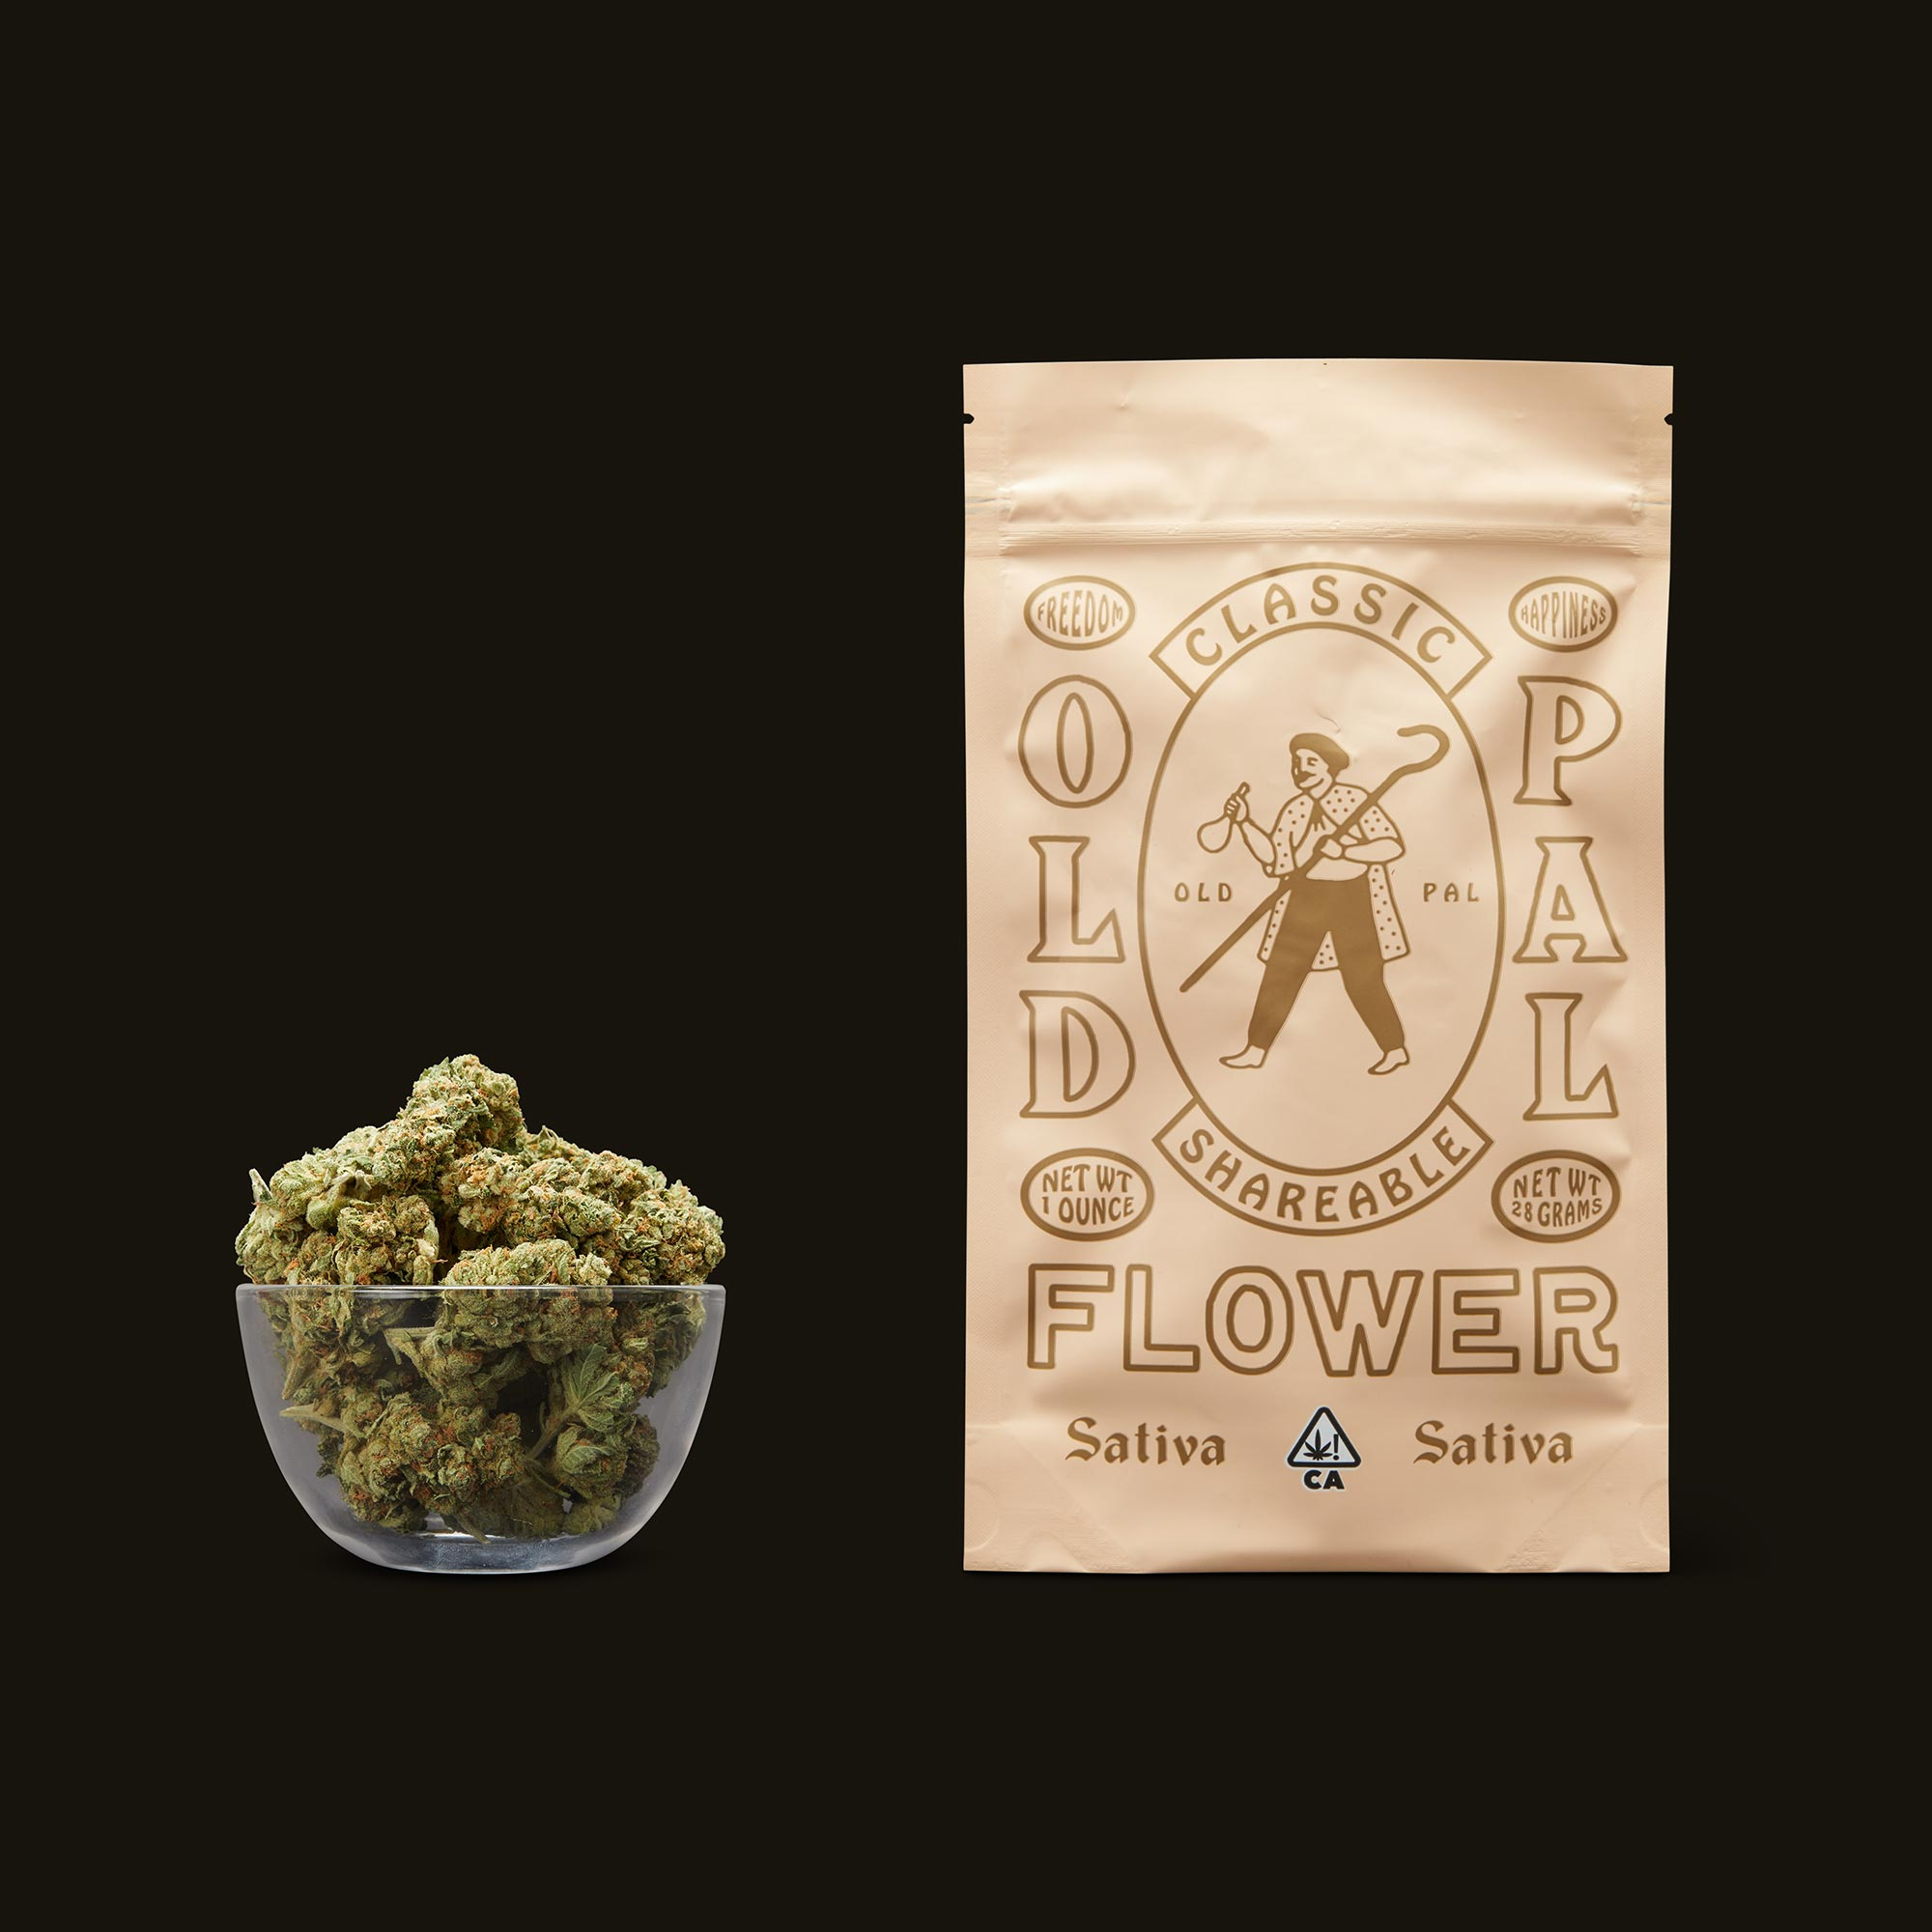 OLD PAL Sativa 1 Ounce